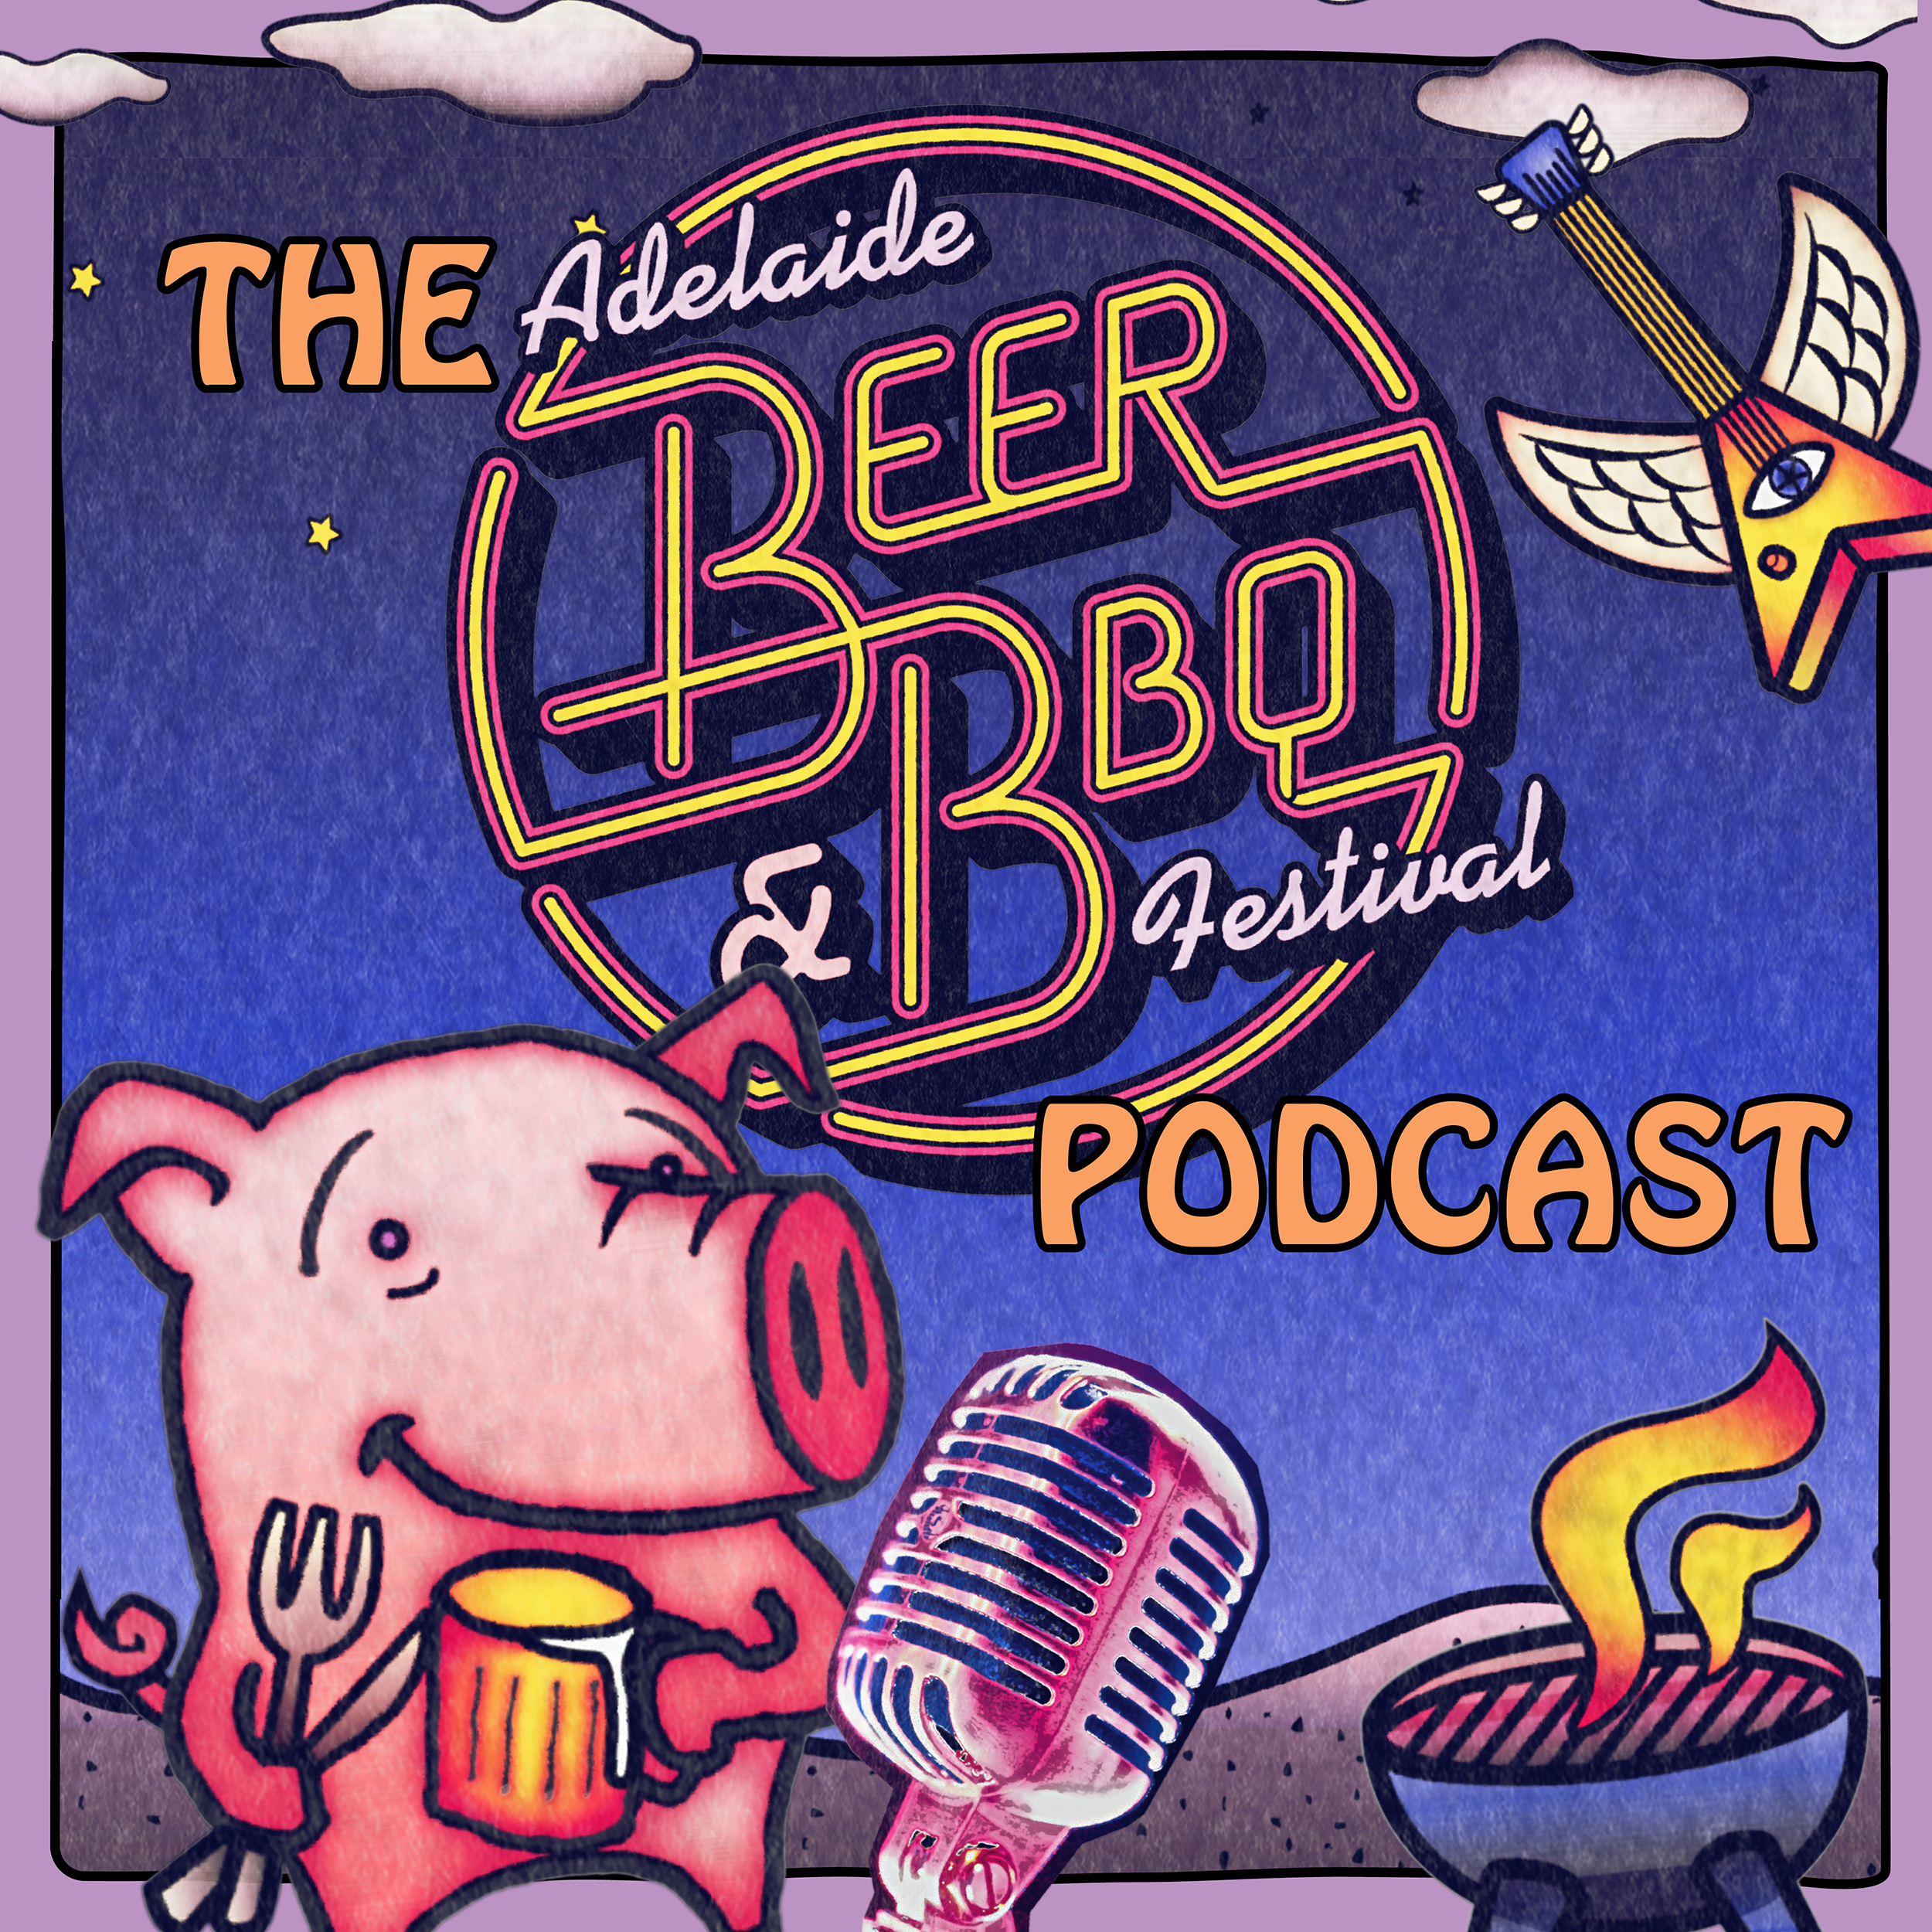 The Beer & BBQ Festival Podcast | Listen Free on Castbox